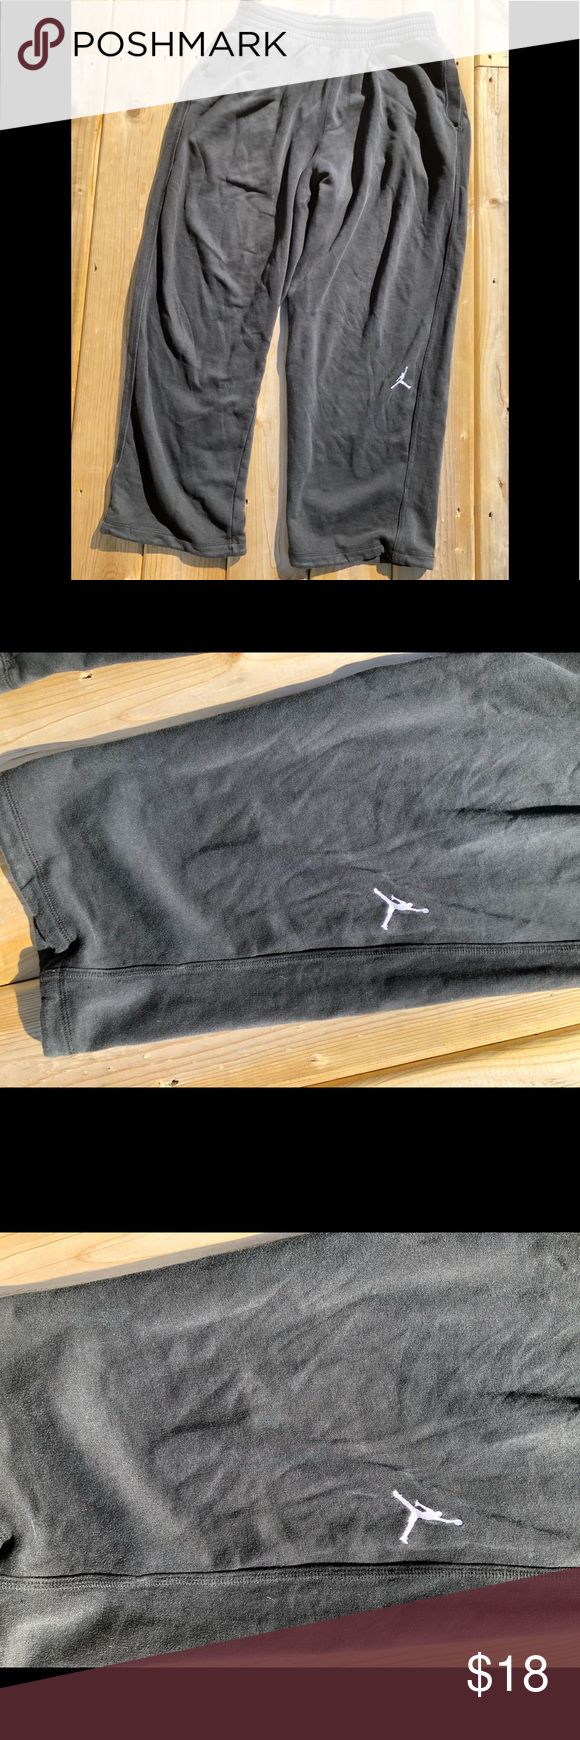 Air Jordan sweat pants Small stain on pant leg but it is so faint that you would have to put in up to your eye and shine light on it to see it Jordan Pants Sweatpants & Joggers